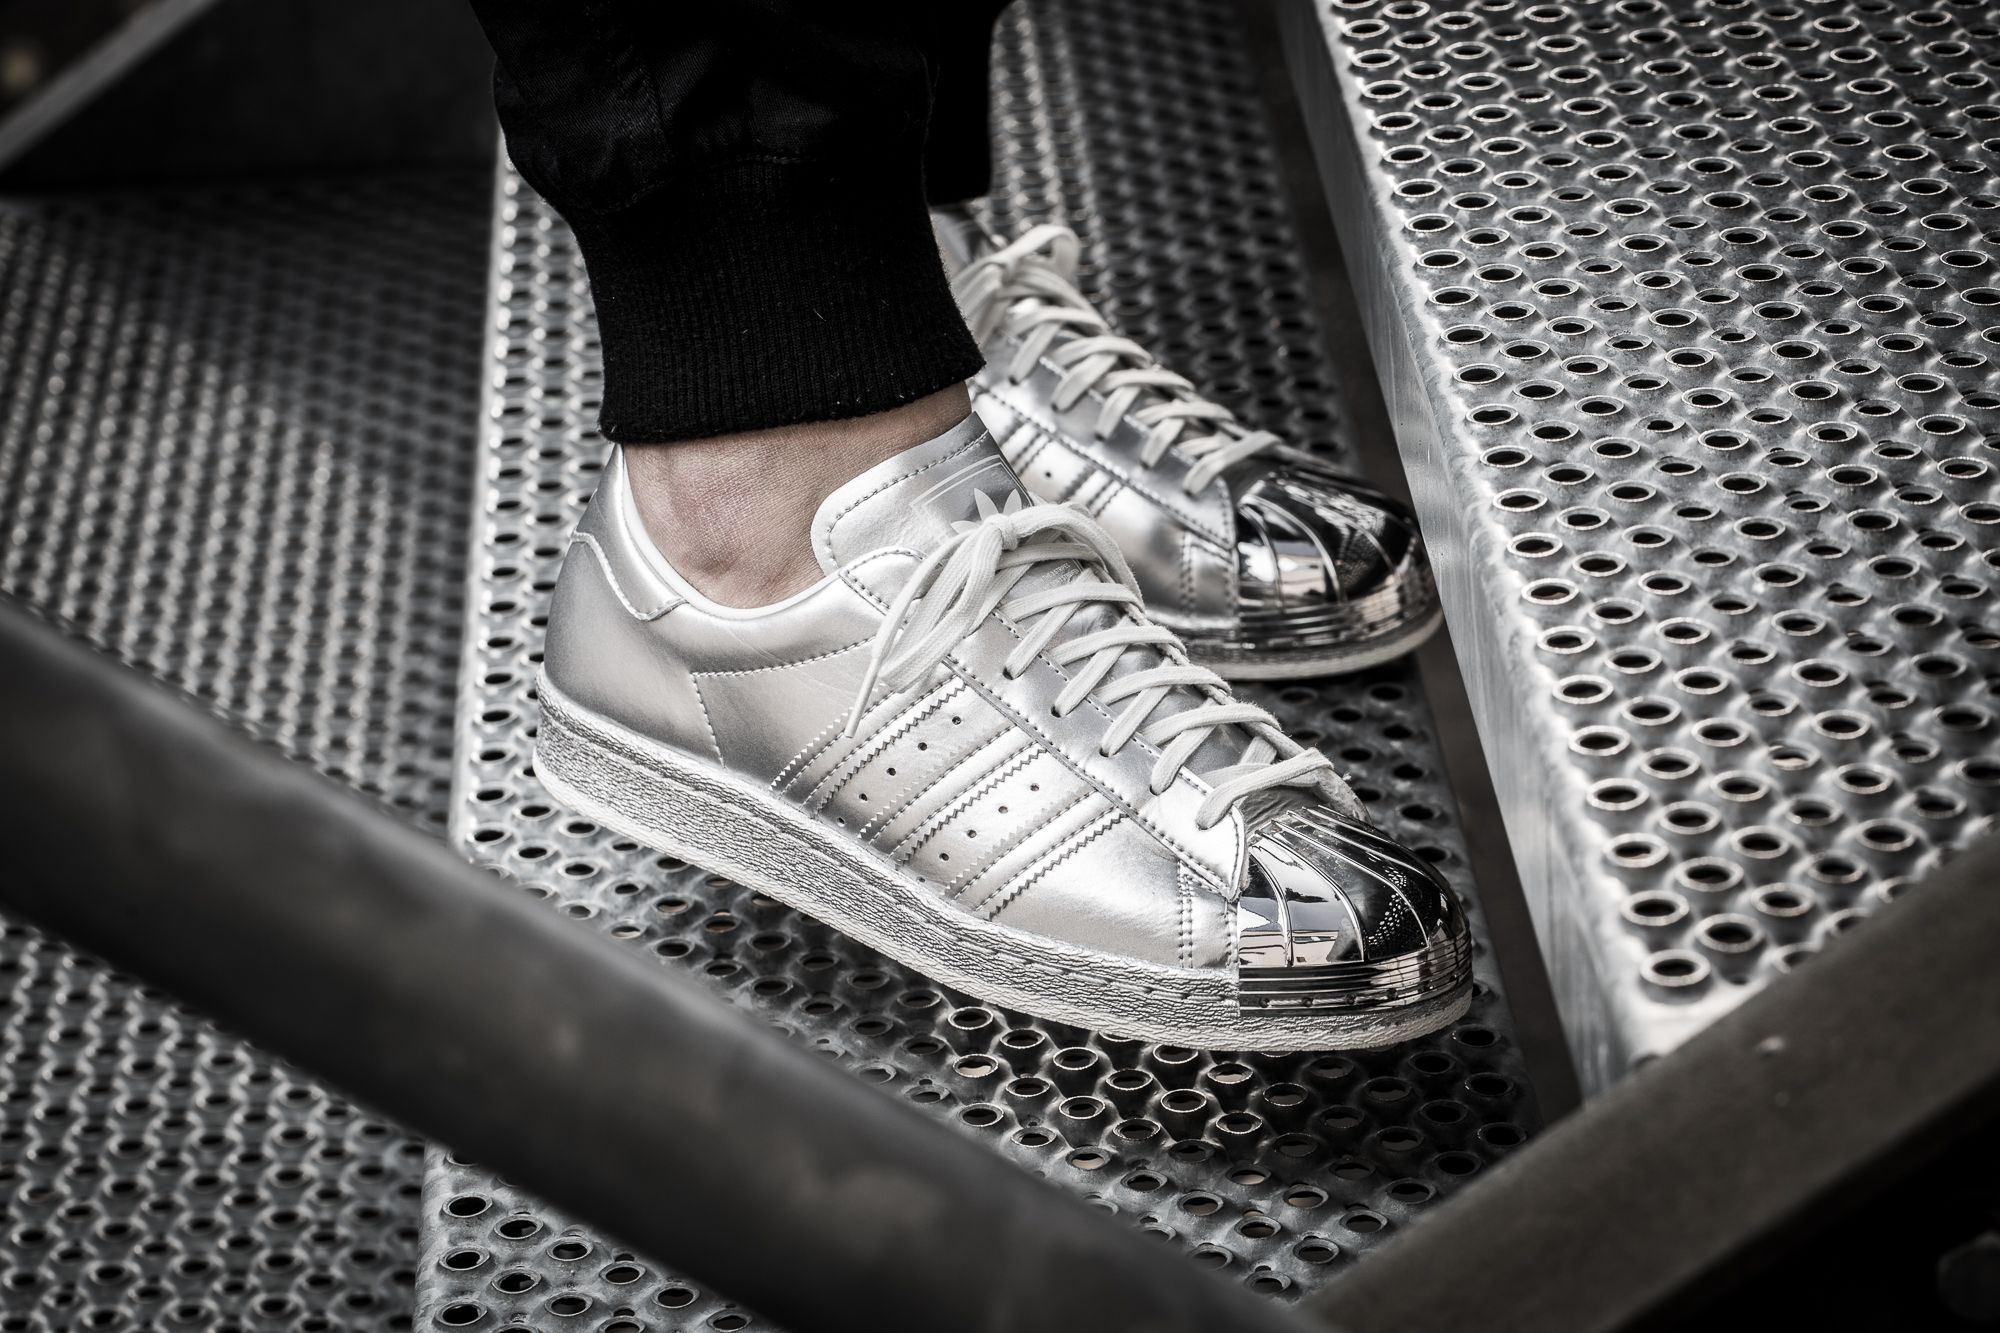 best sneakers fe9b6 c703f Girls, check out this silver beauty! The adidas Originals Superstar 80s  from the